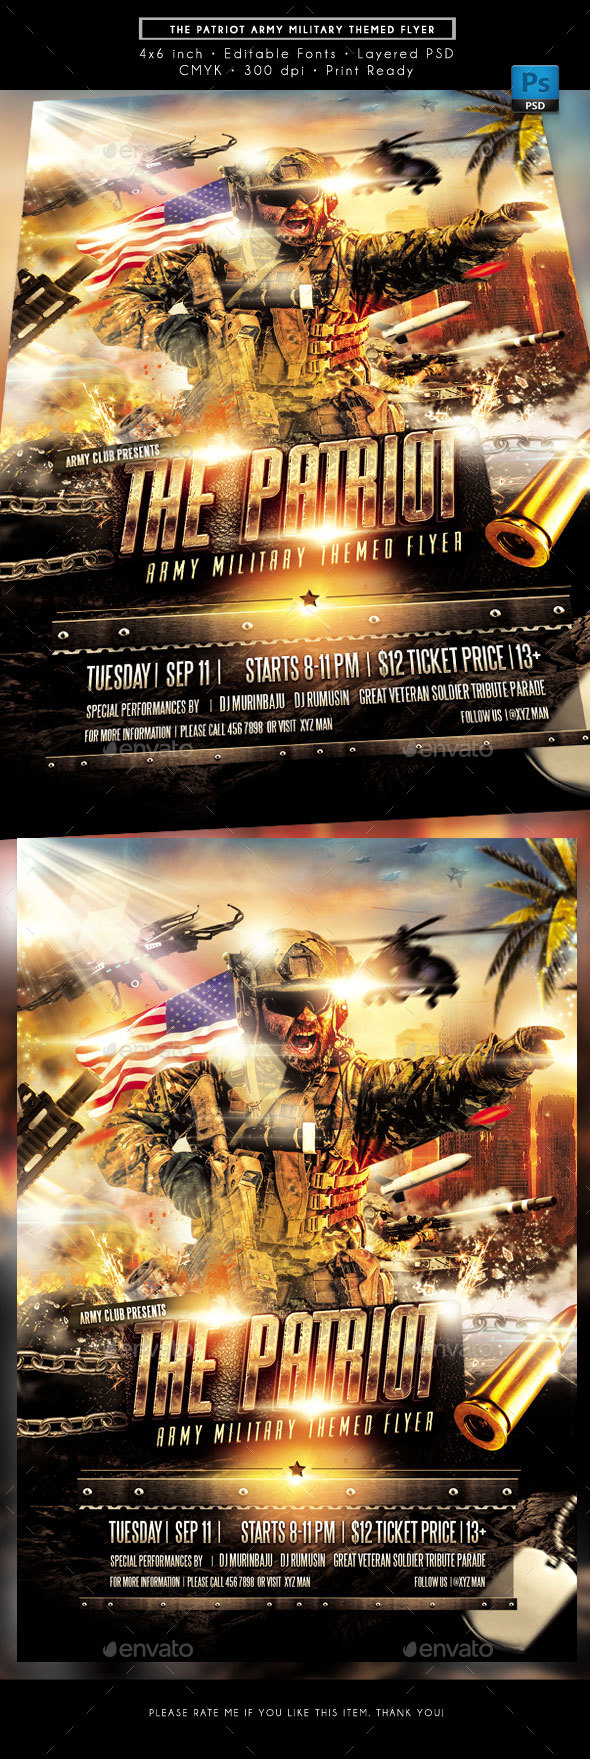 The Patriot Army Military Theme Flyer - Miscellaneous Events